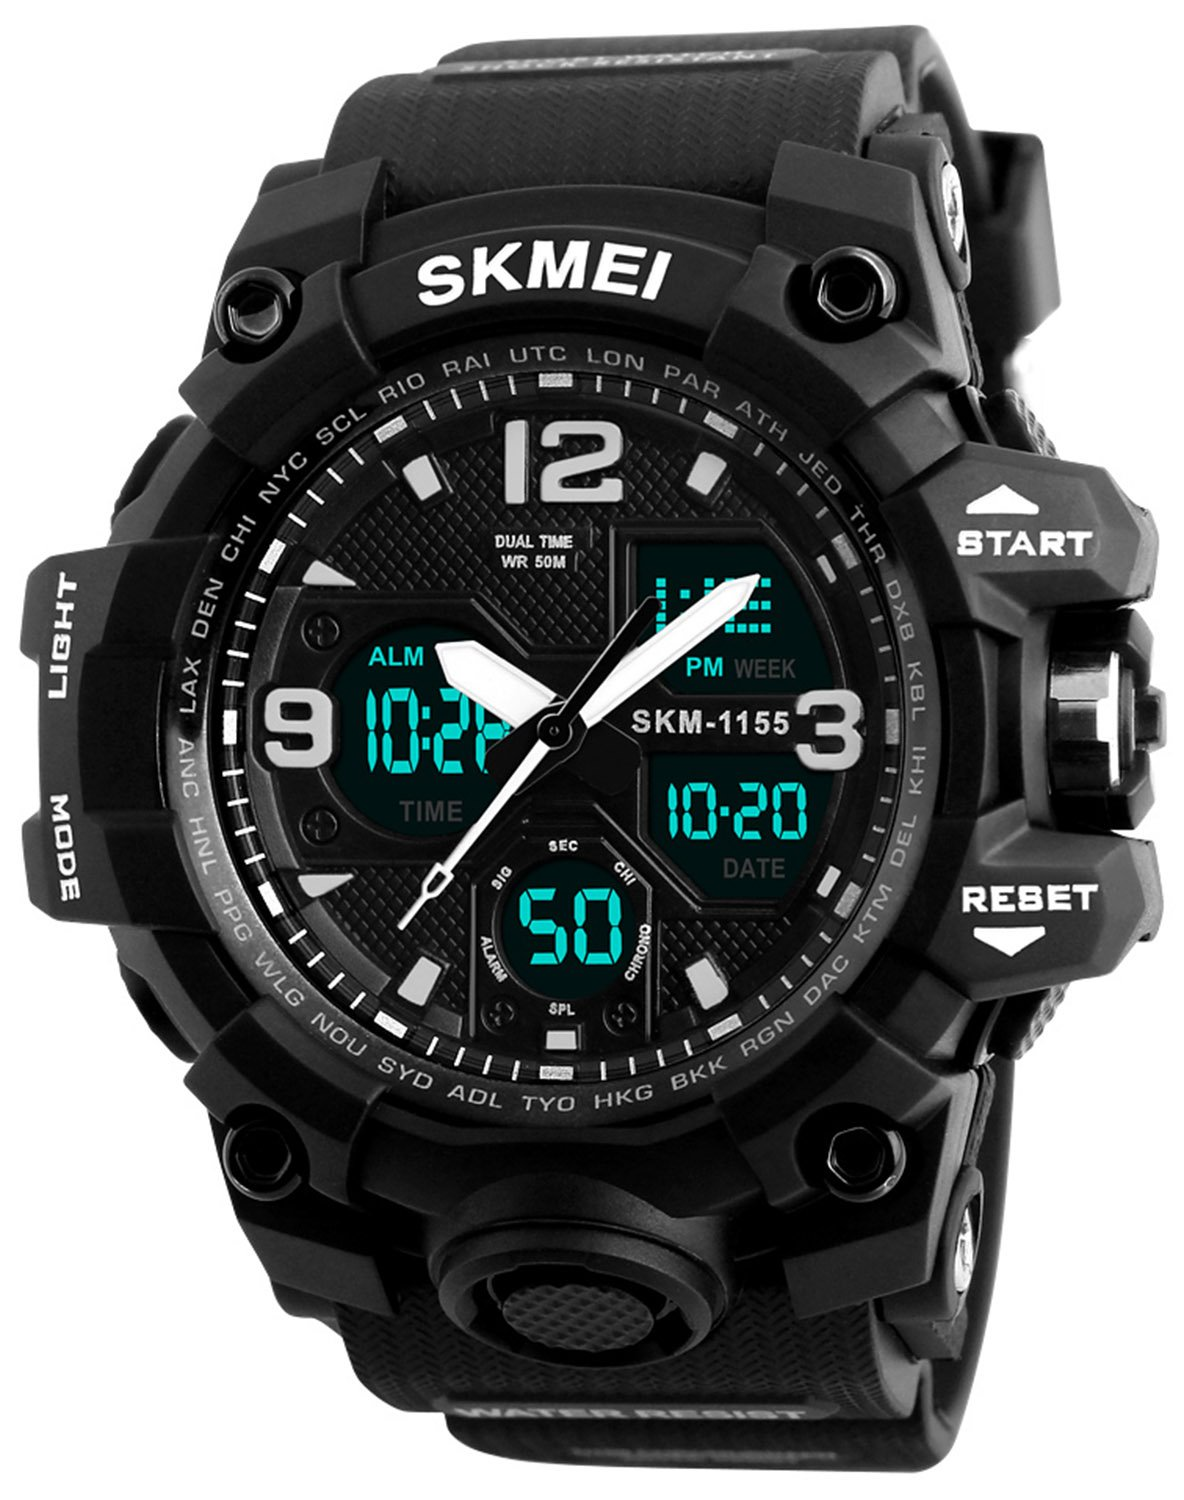 Men's Analog Digital Waterproof Sports Watch Military Multifunction Dual Time Stopwatch Alarm Back Light 50M Water Resistant Watch (Black)